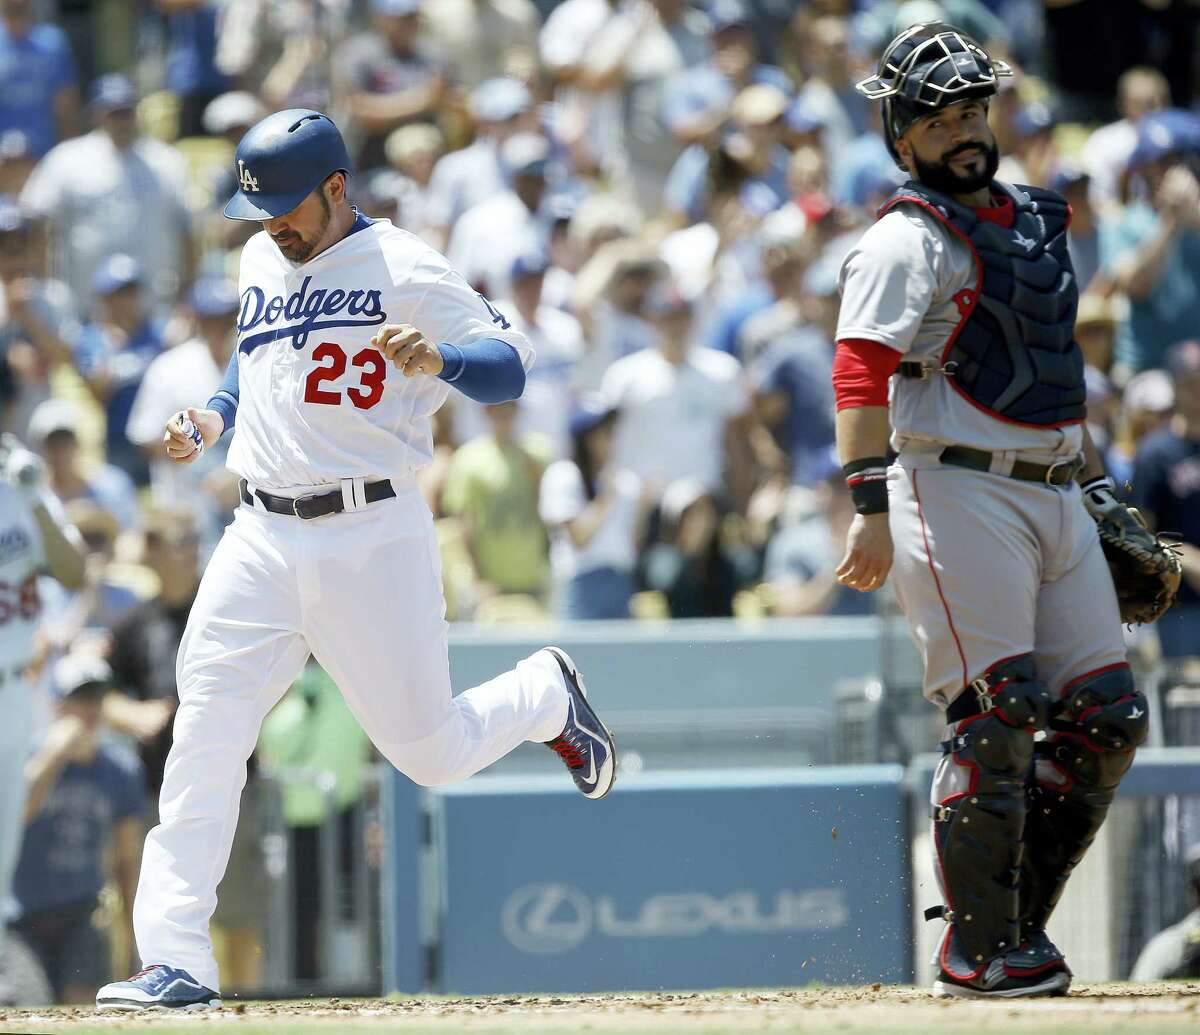 The Dodgers' Adrian Gonzalez, left, scores on a single by A.J. Ellis in the second inning.